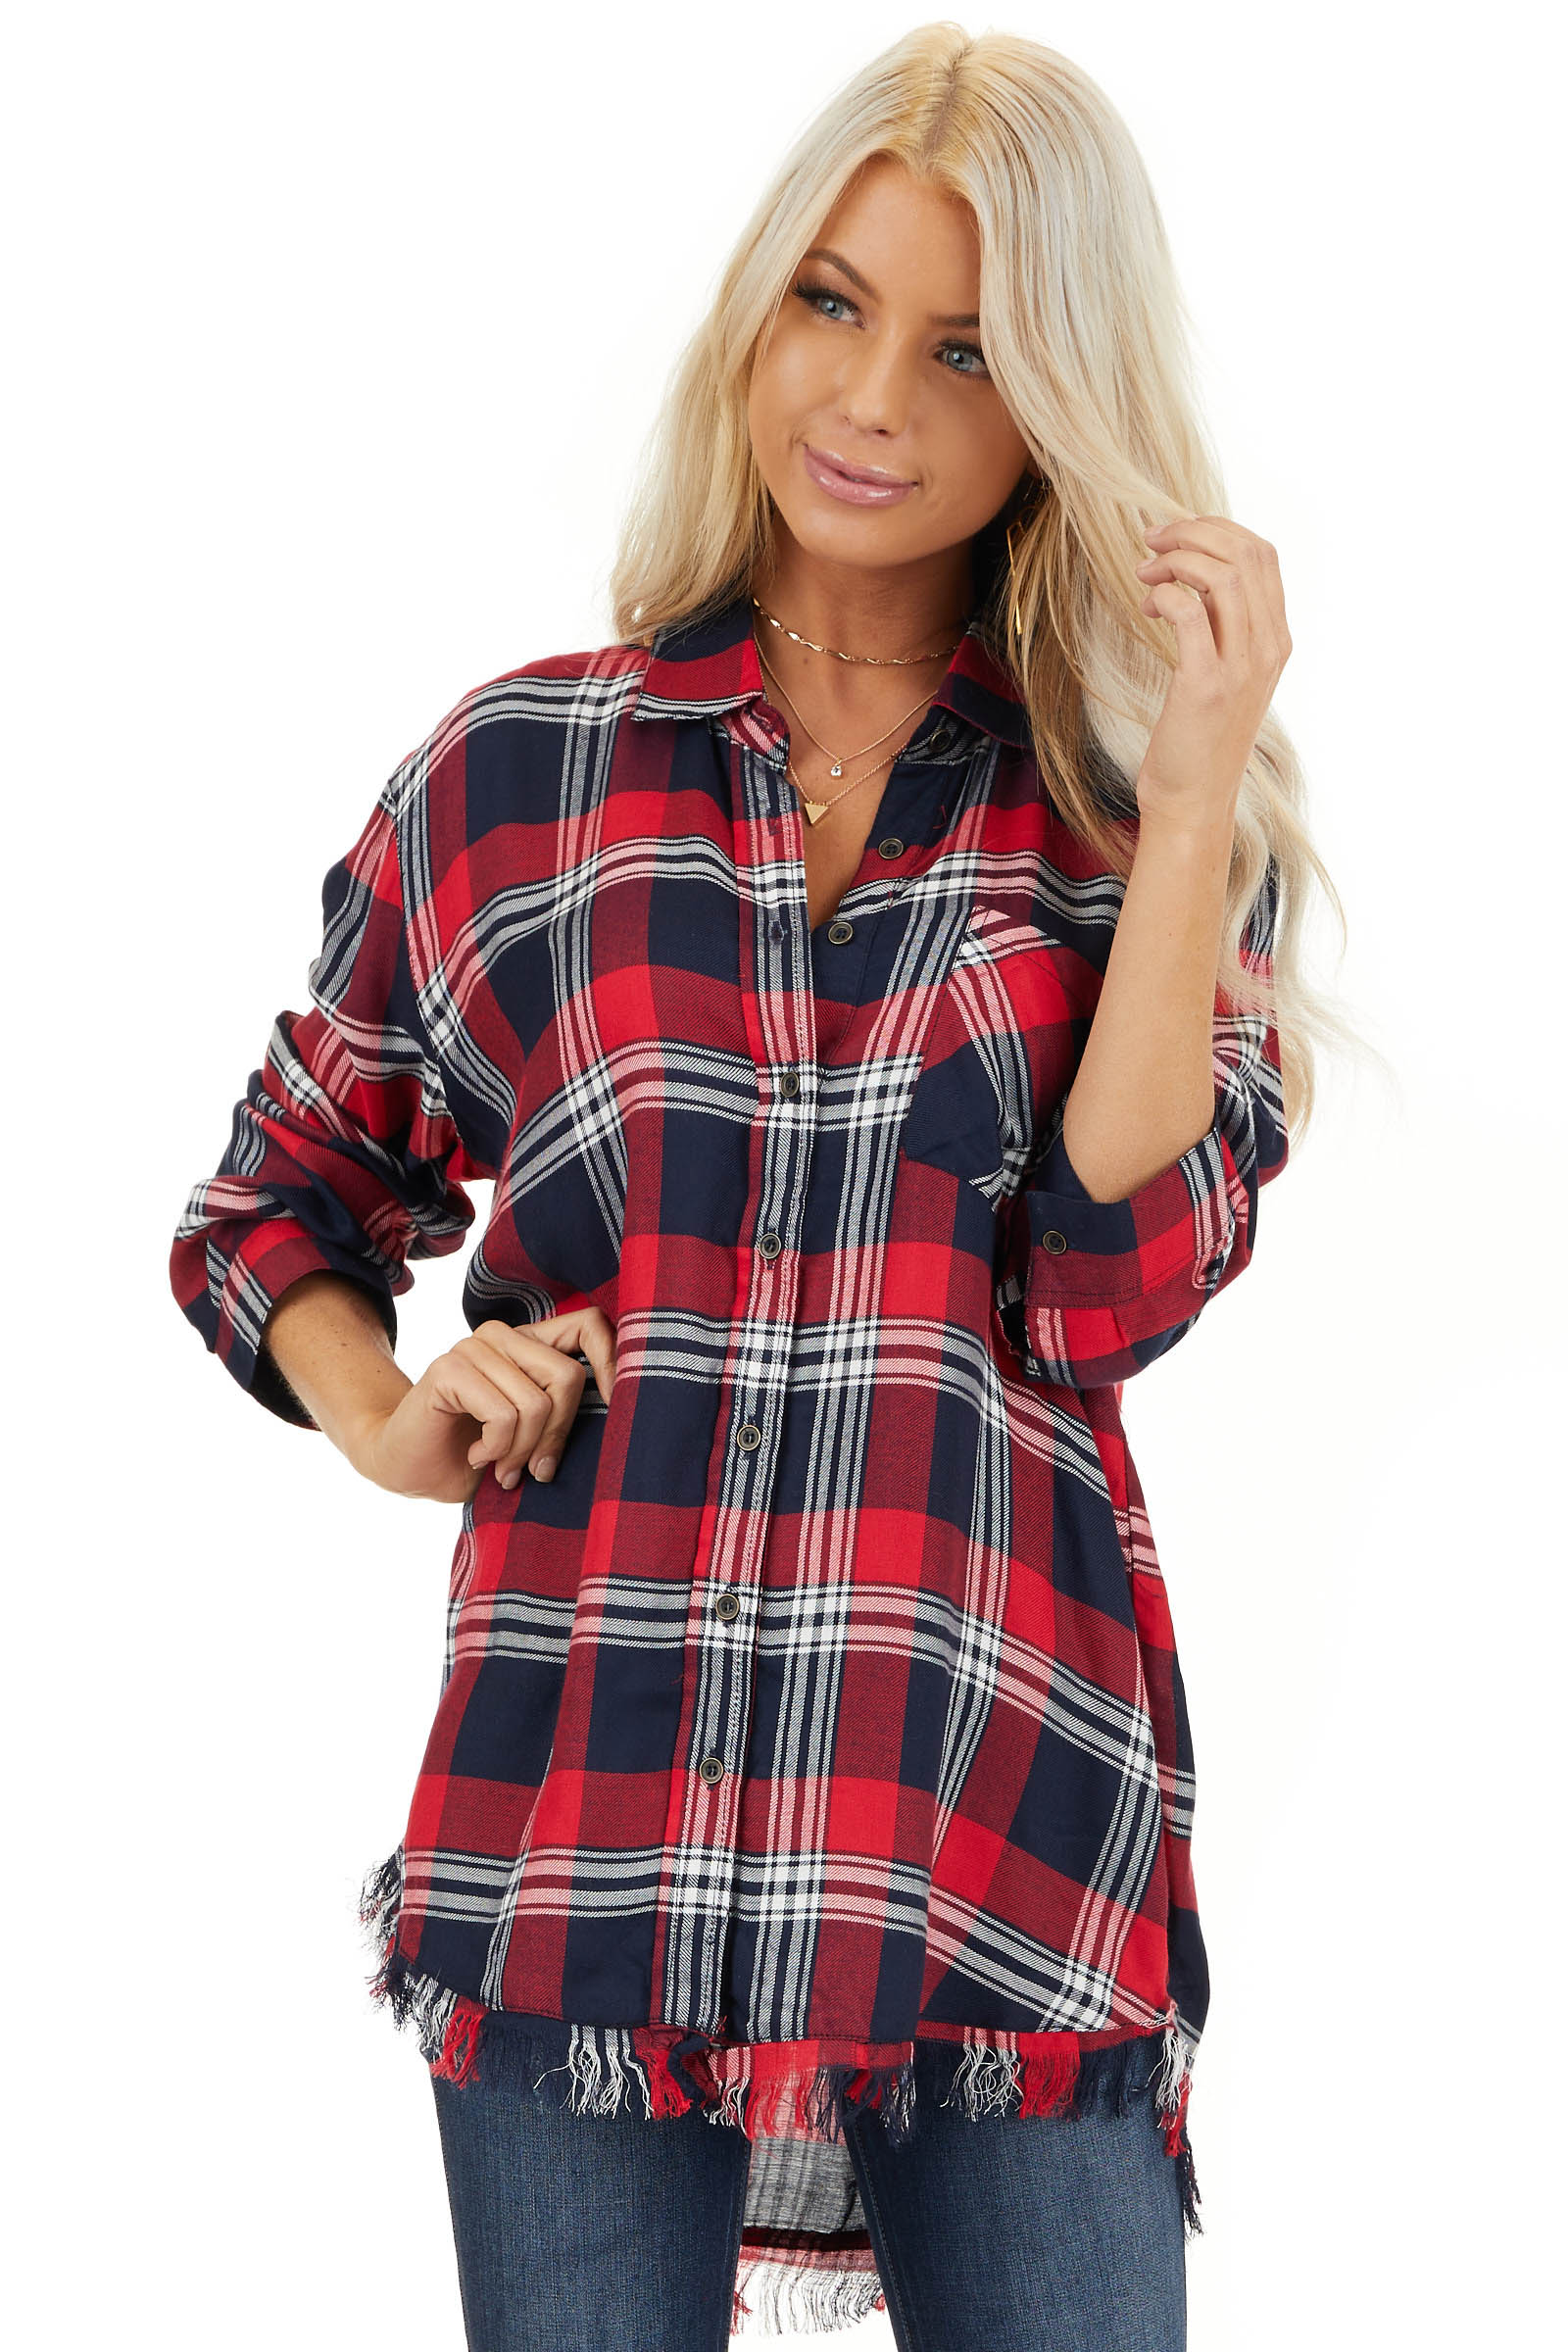 Lipstick Red and Navy Plaid Button Up Top with Long Sleeves front close up